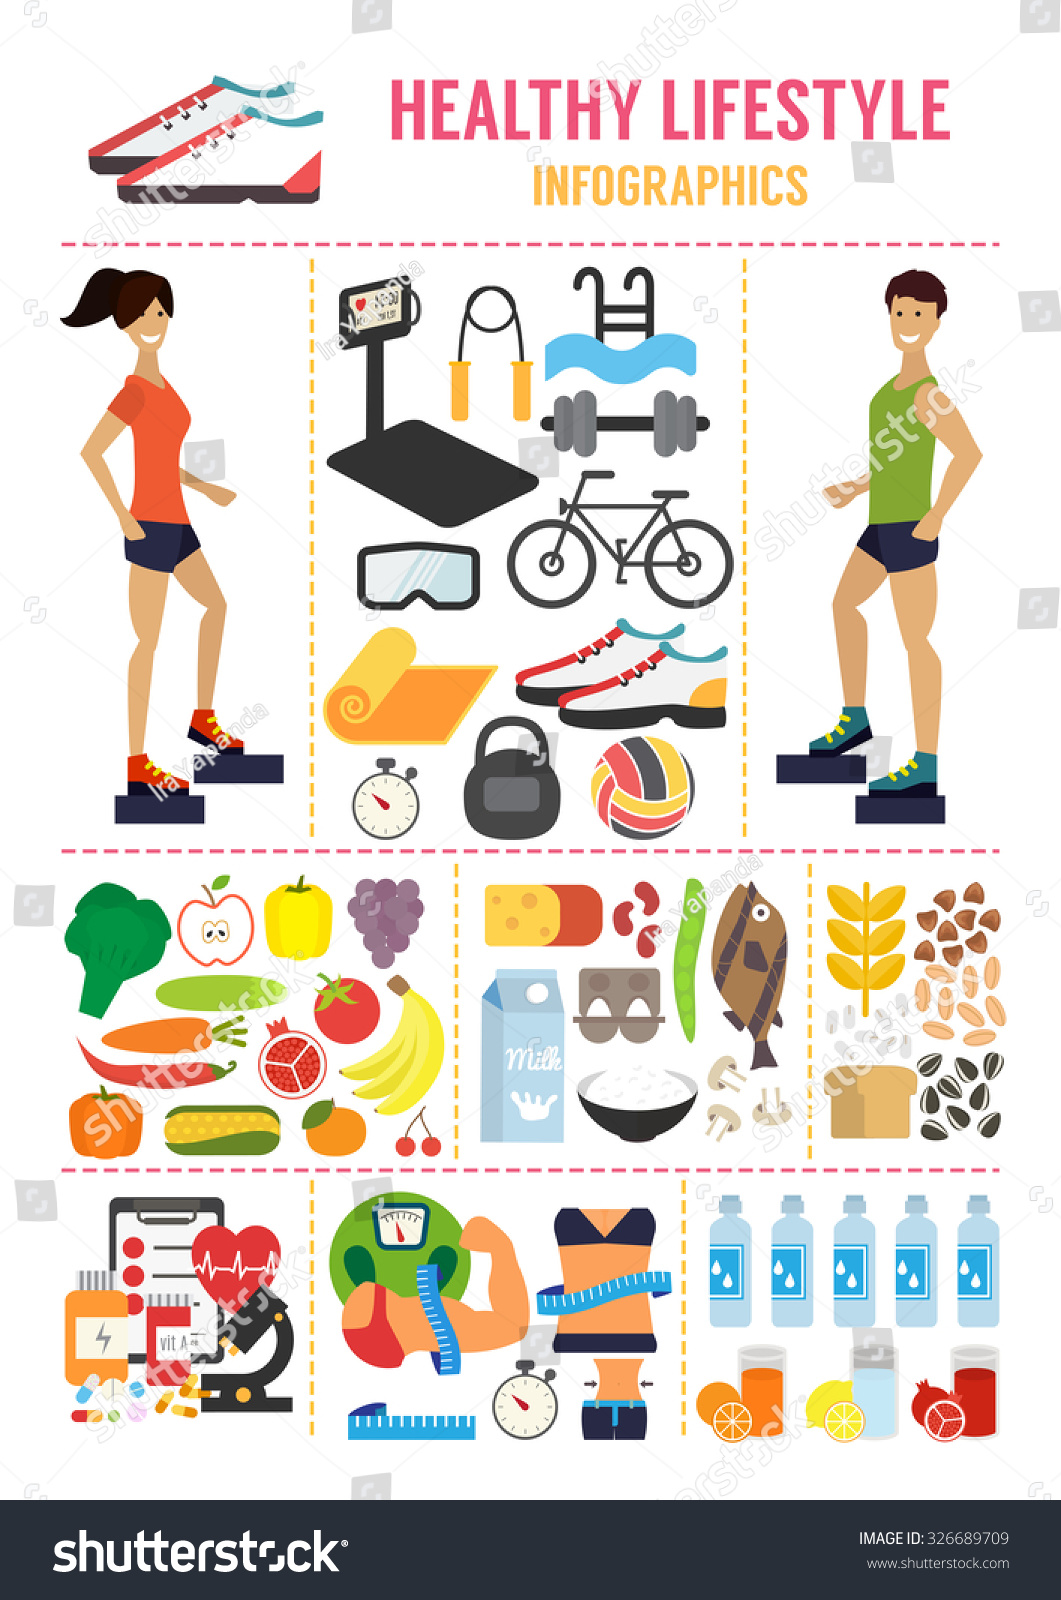 Healthy Lifestyle Infographic Fitness Stock Photo